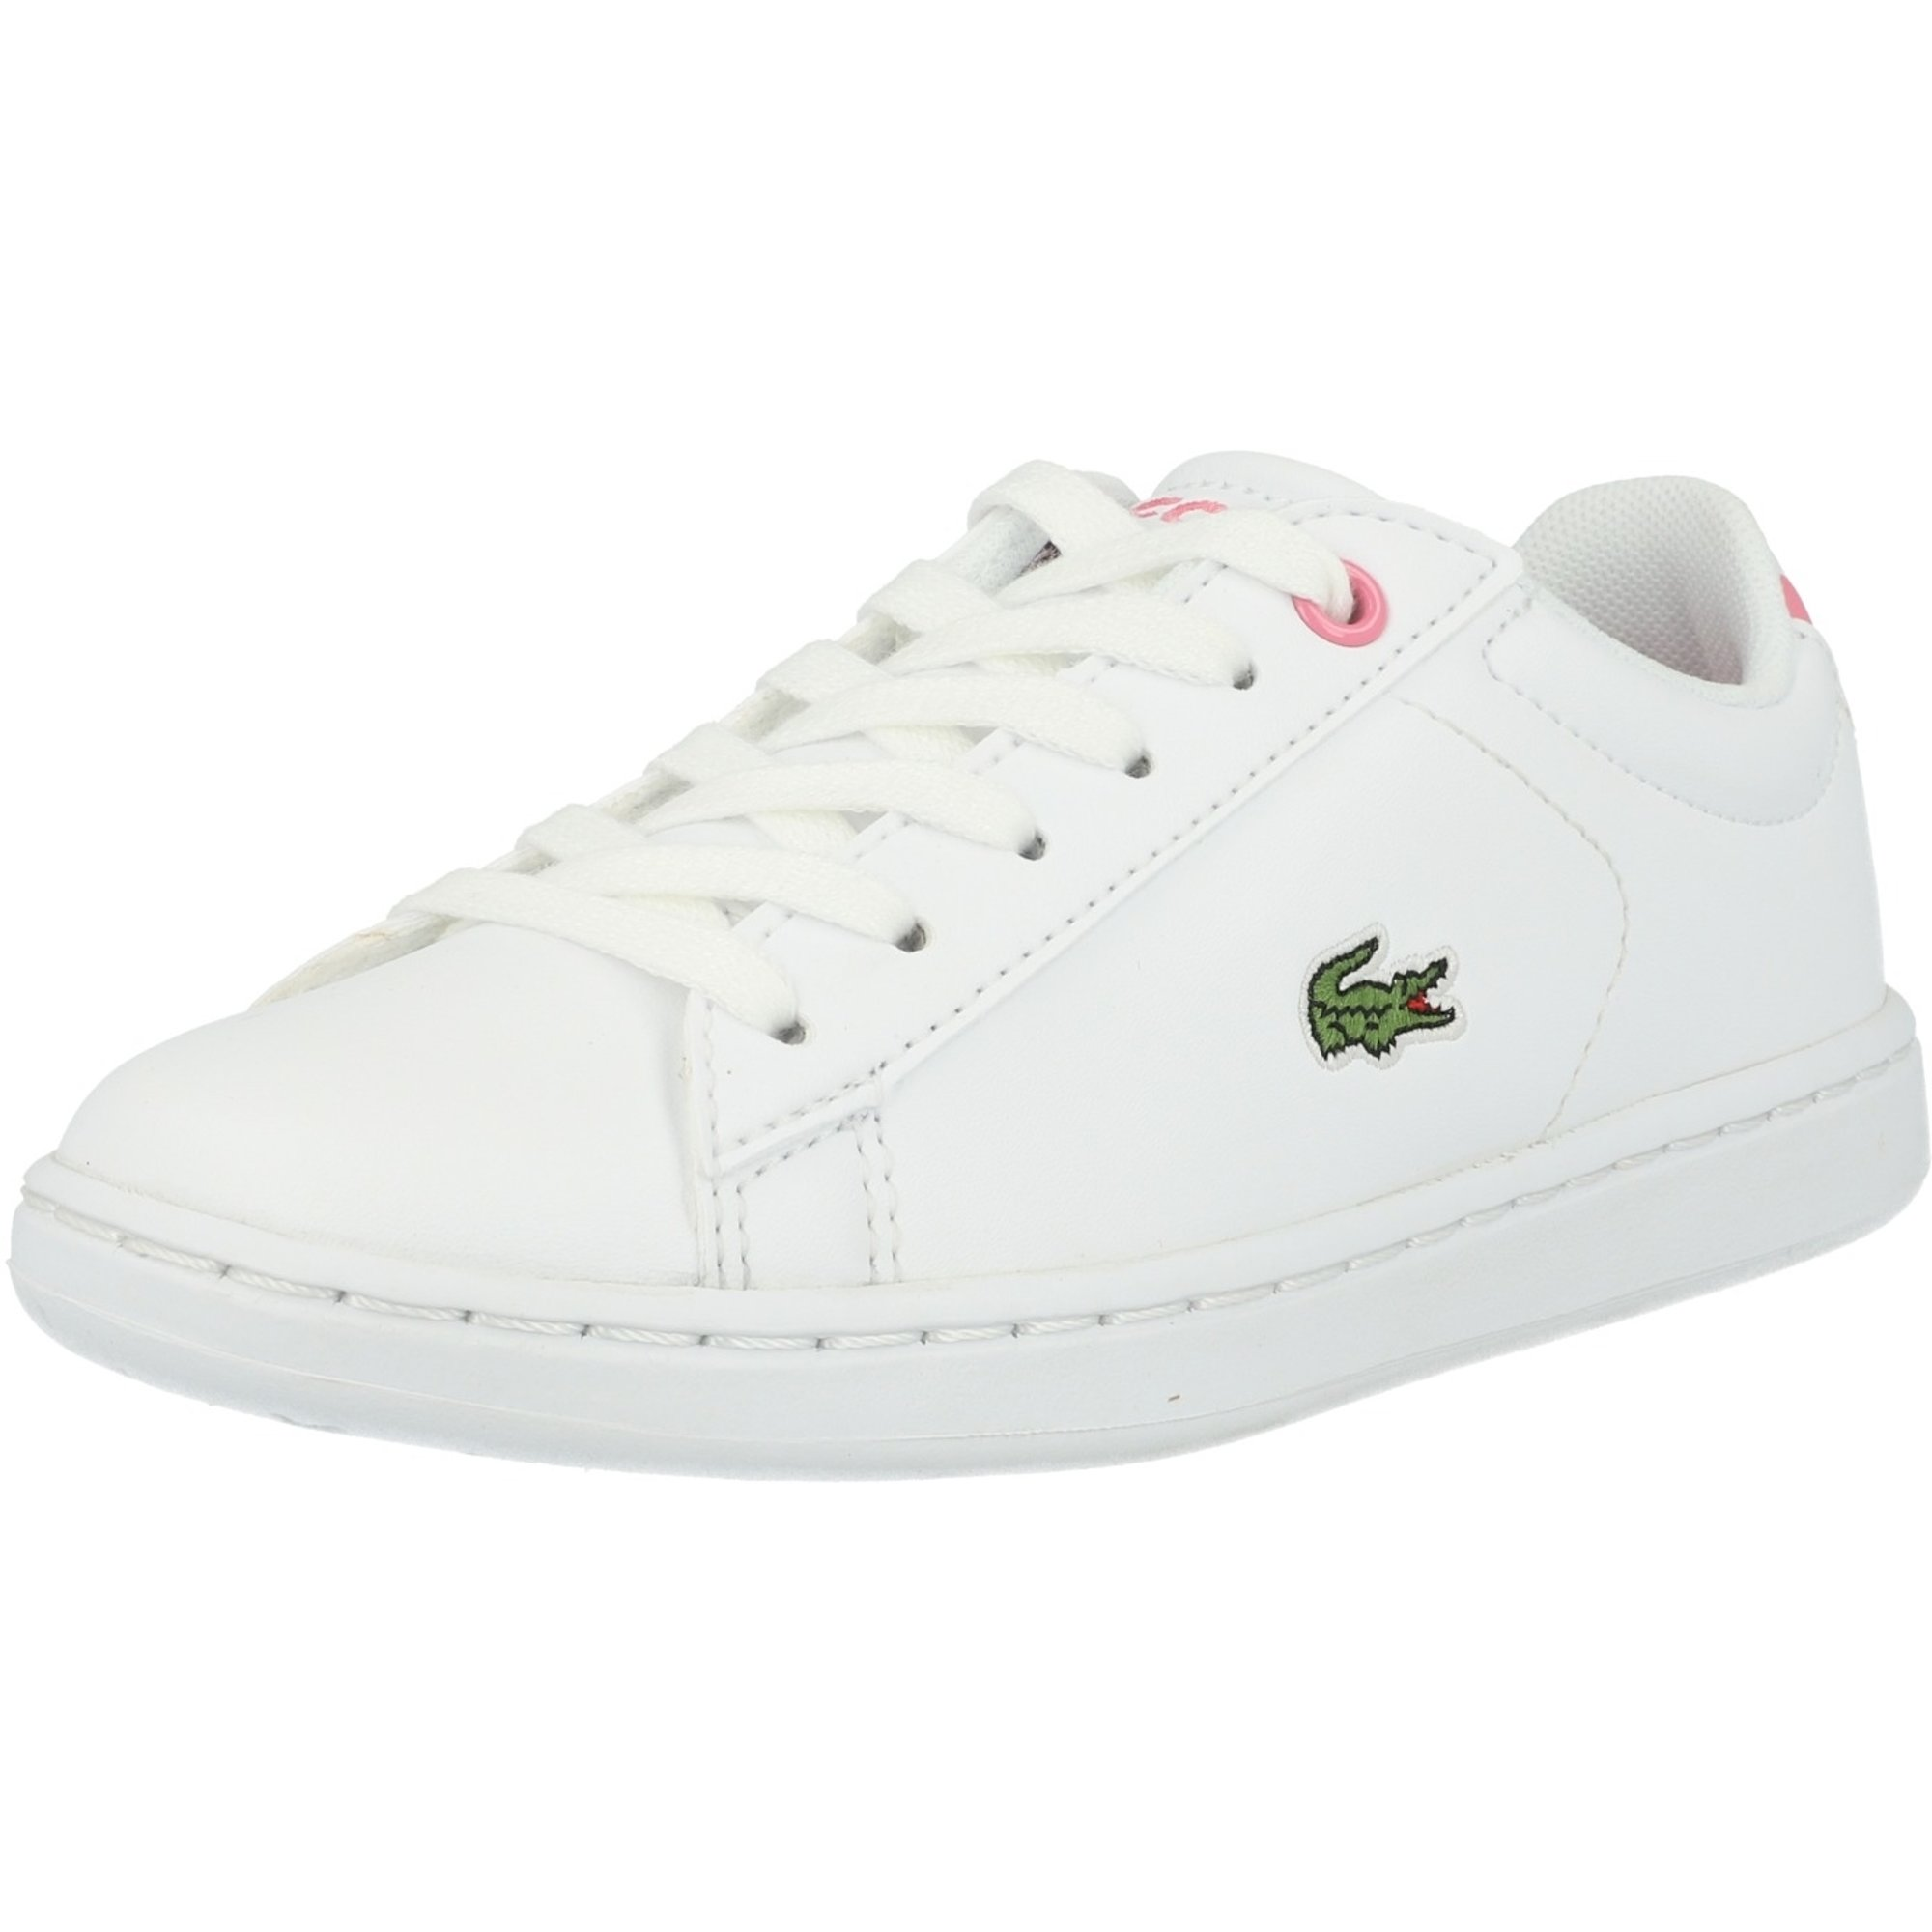 Lacoste Carnaby Evo BL 2 White/Pink Synthetic